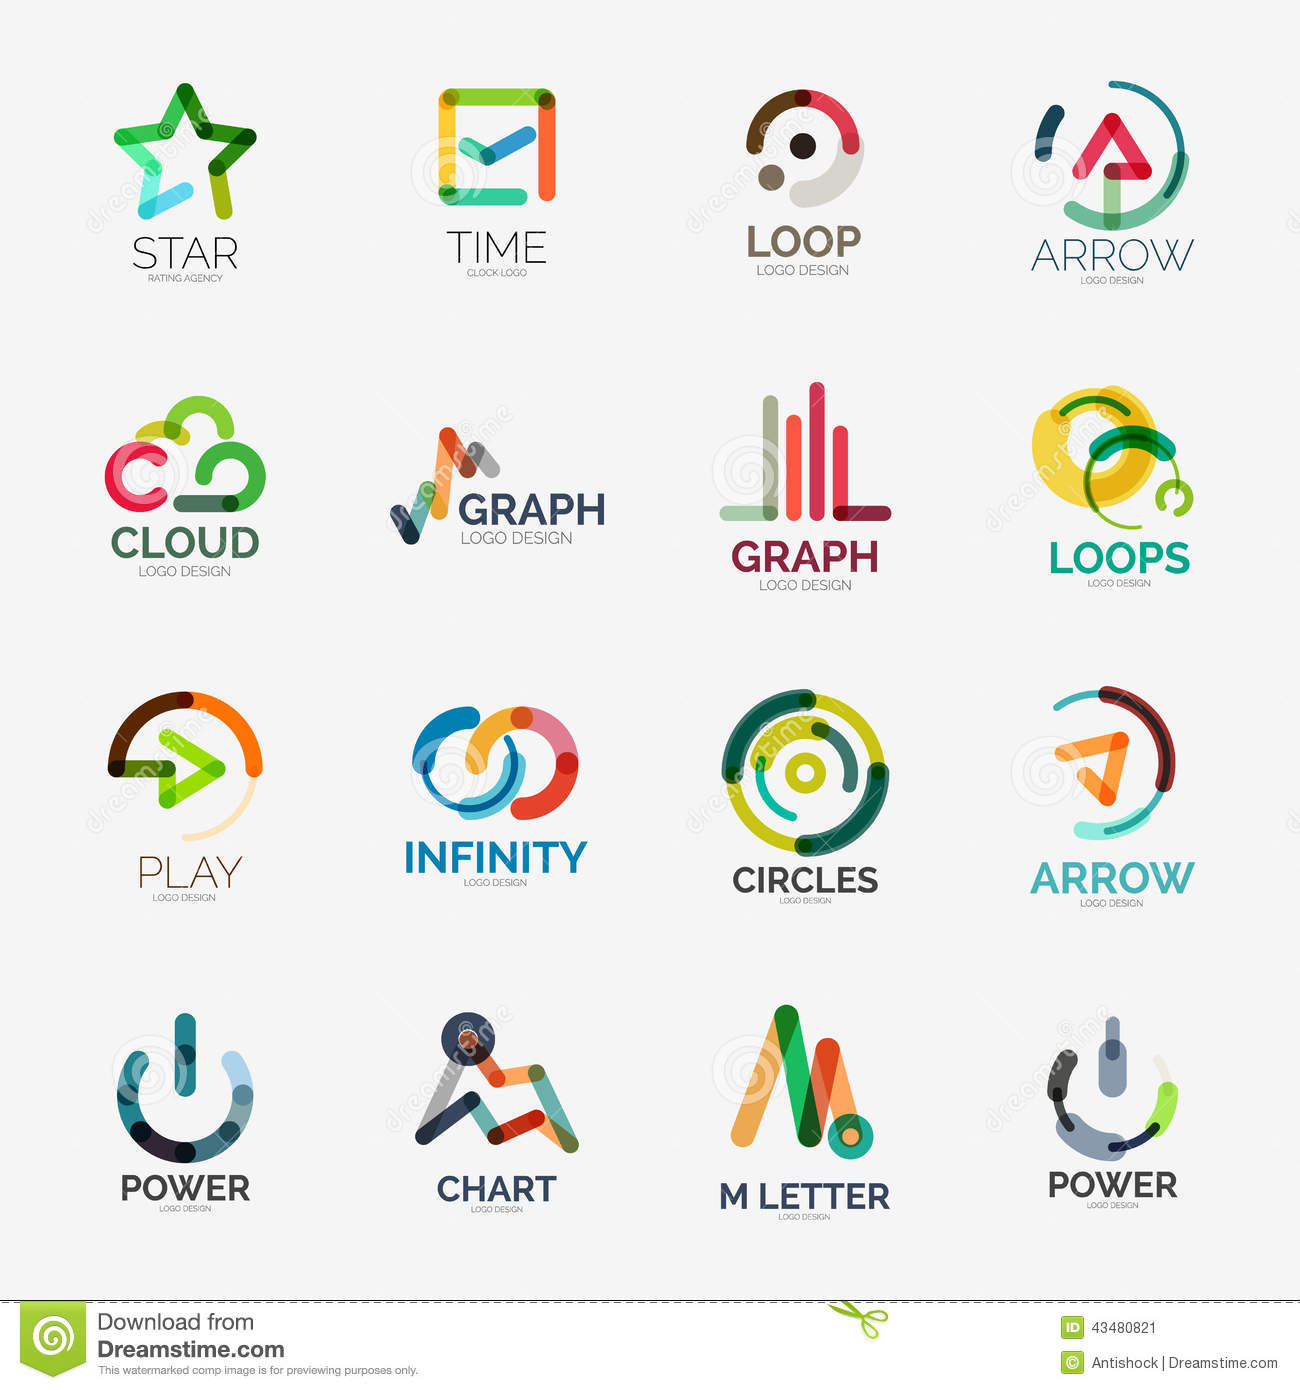 15 corporate logo vector images free company logo design